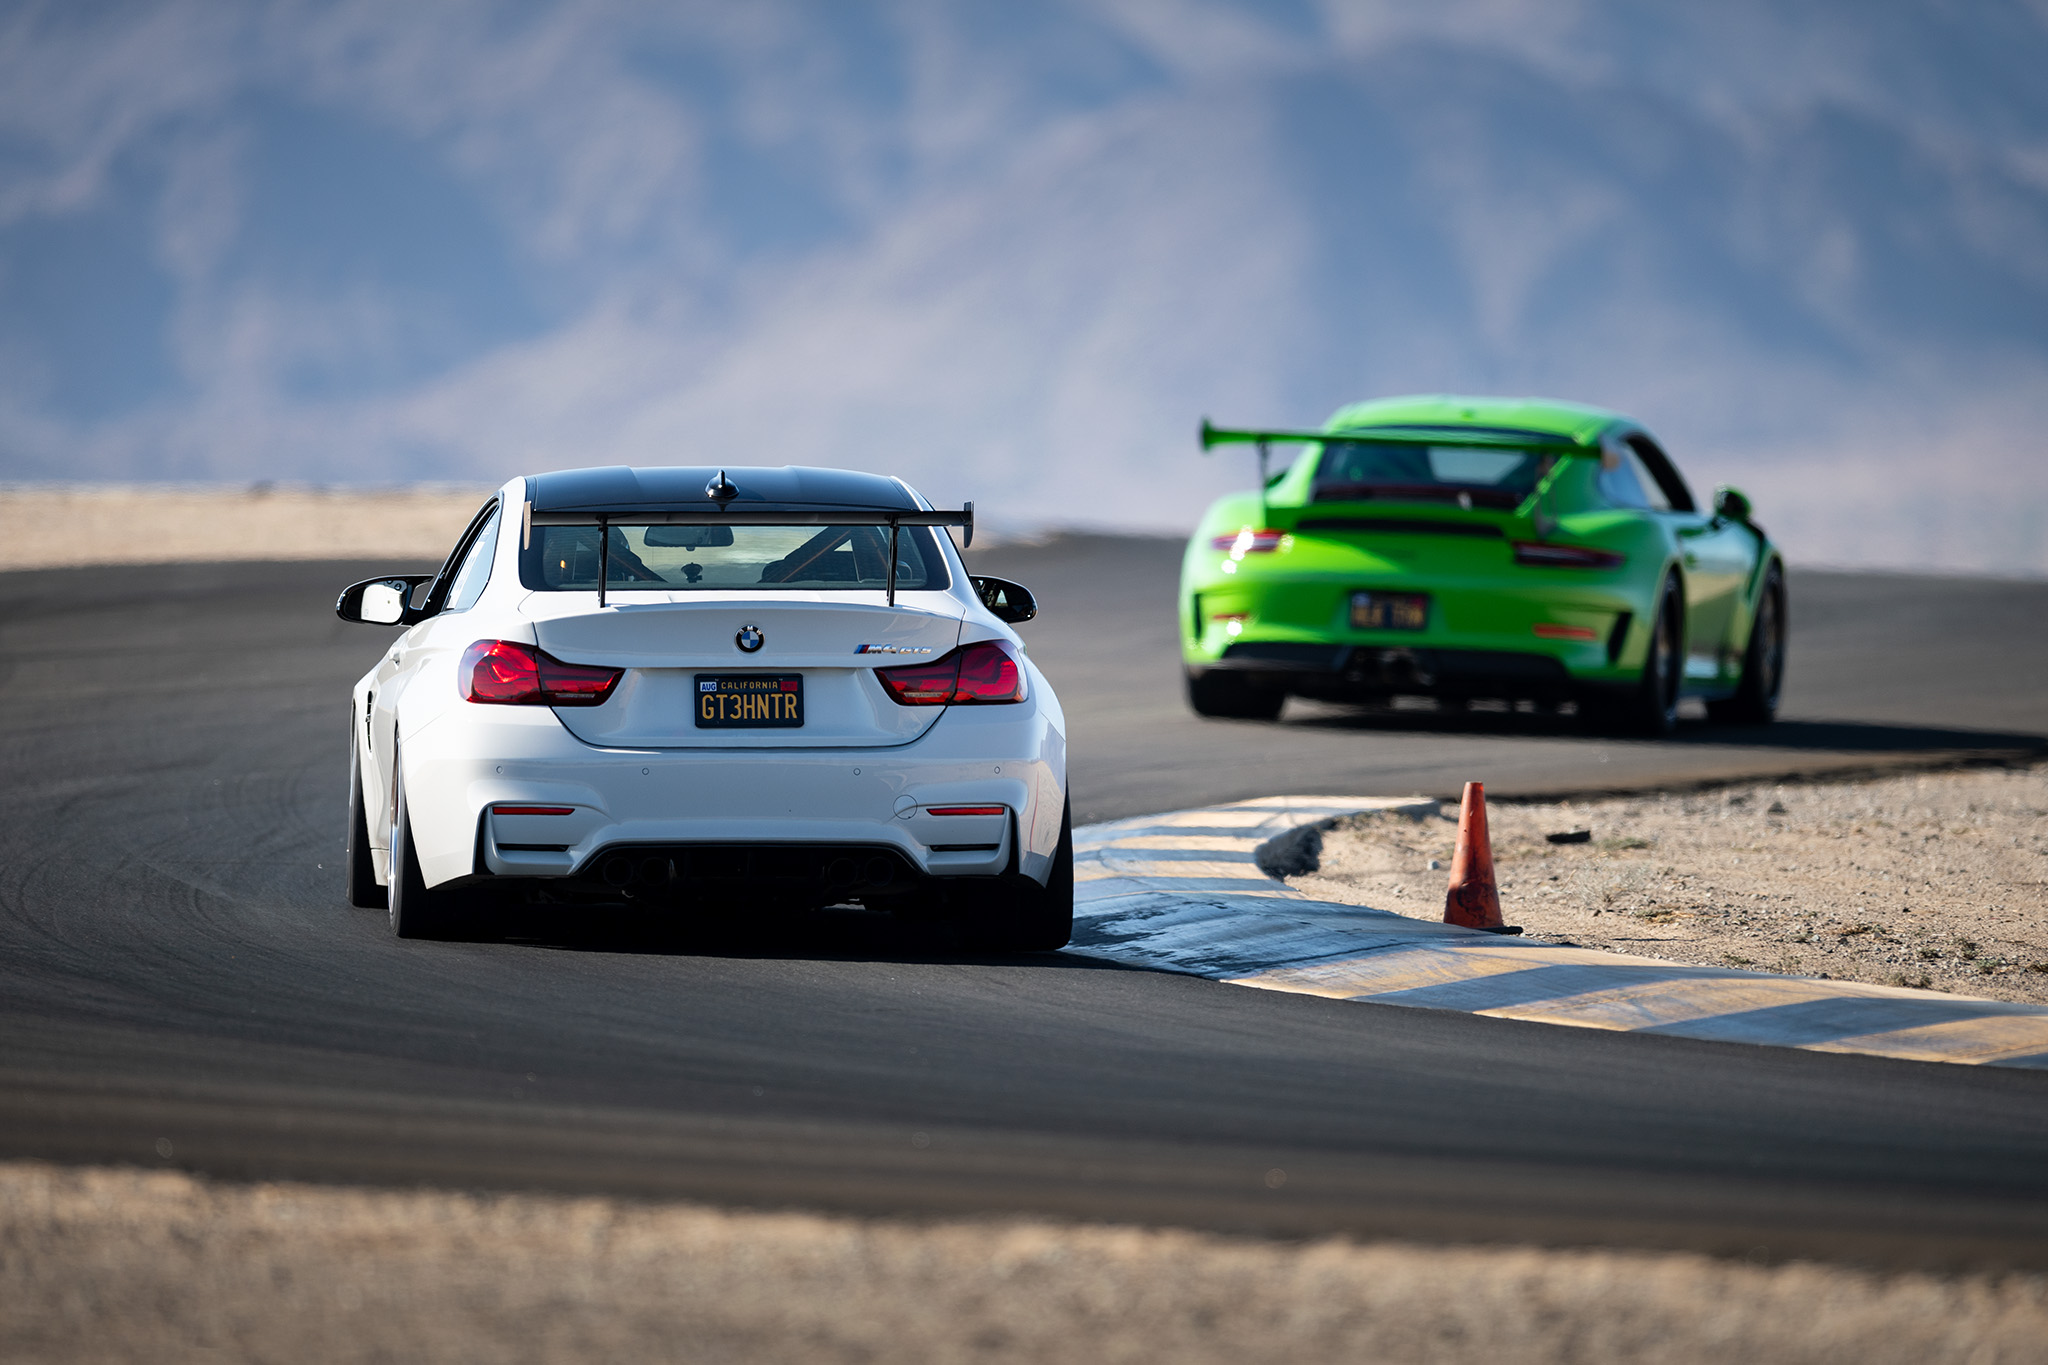 A BMW M4 GTS chases down a Porsche GT3 RS at Club Racer Events' debut at Chuckwalla Valley Raceway in California, motorsports photography by Luke Munnell